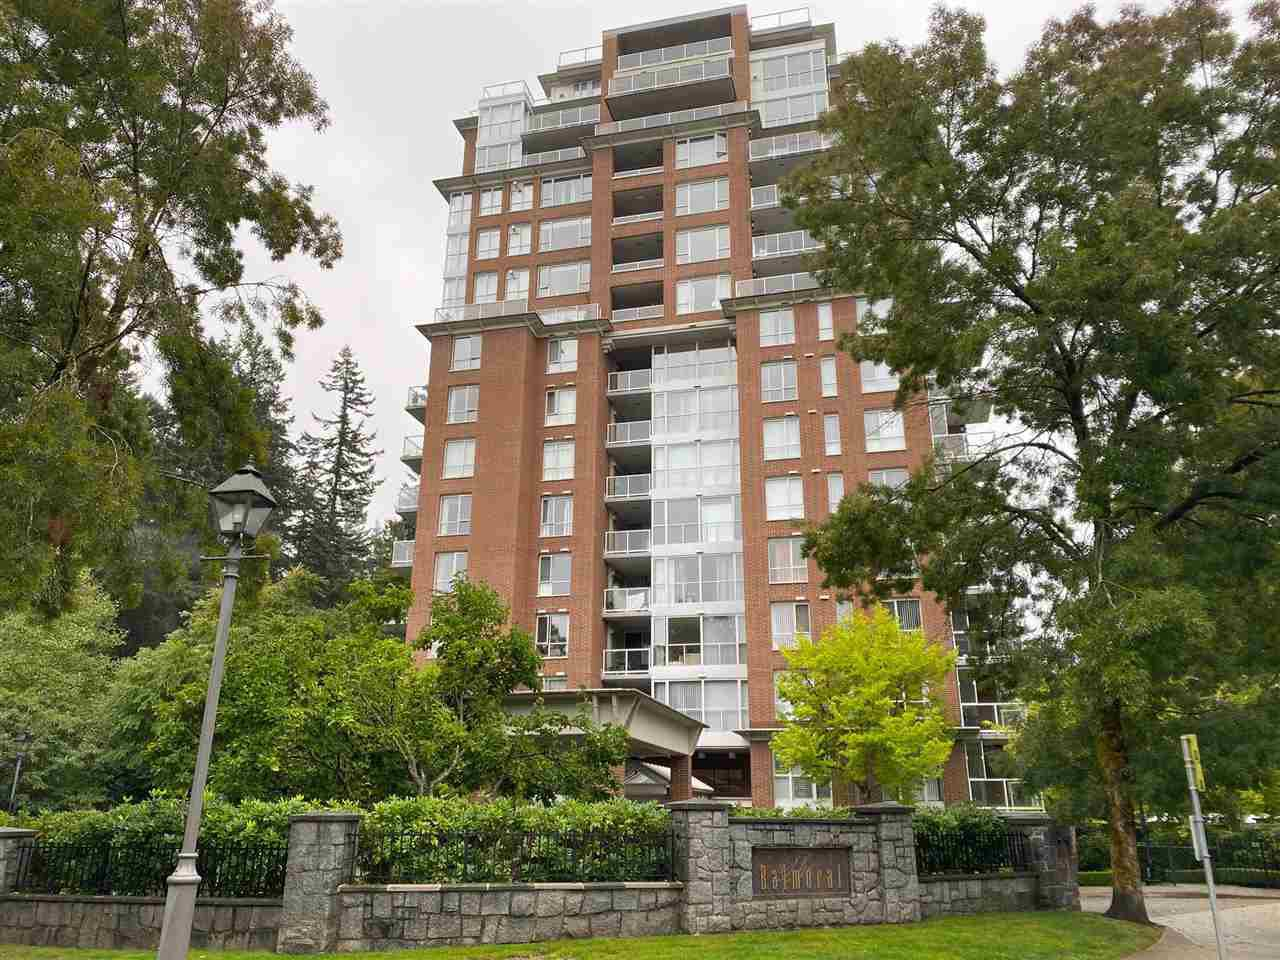 Main Photo: 1503 5615 HAMPTON PLACE in Vancouver: University VW Condo for sale (Vancouver West)  : MLS®# R2504856